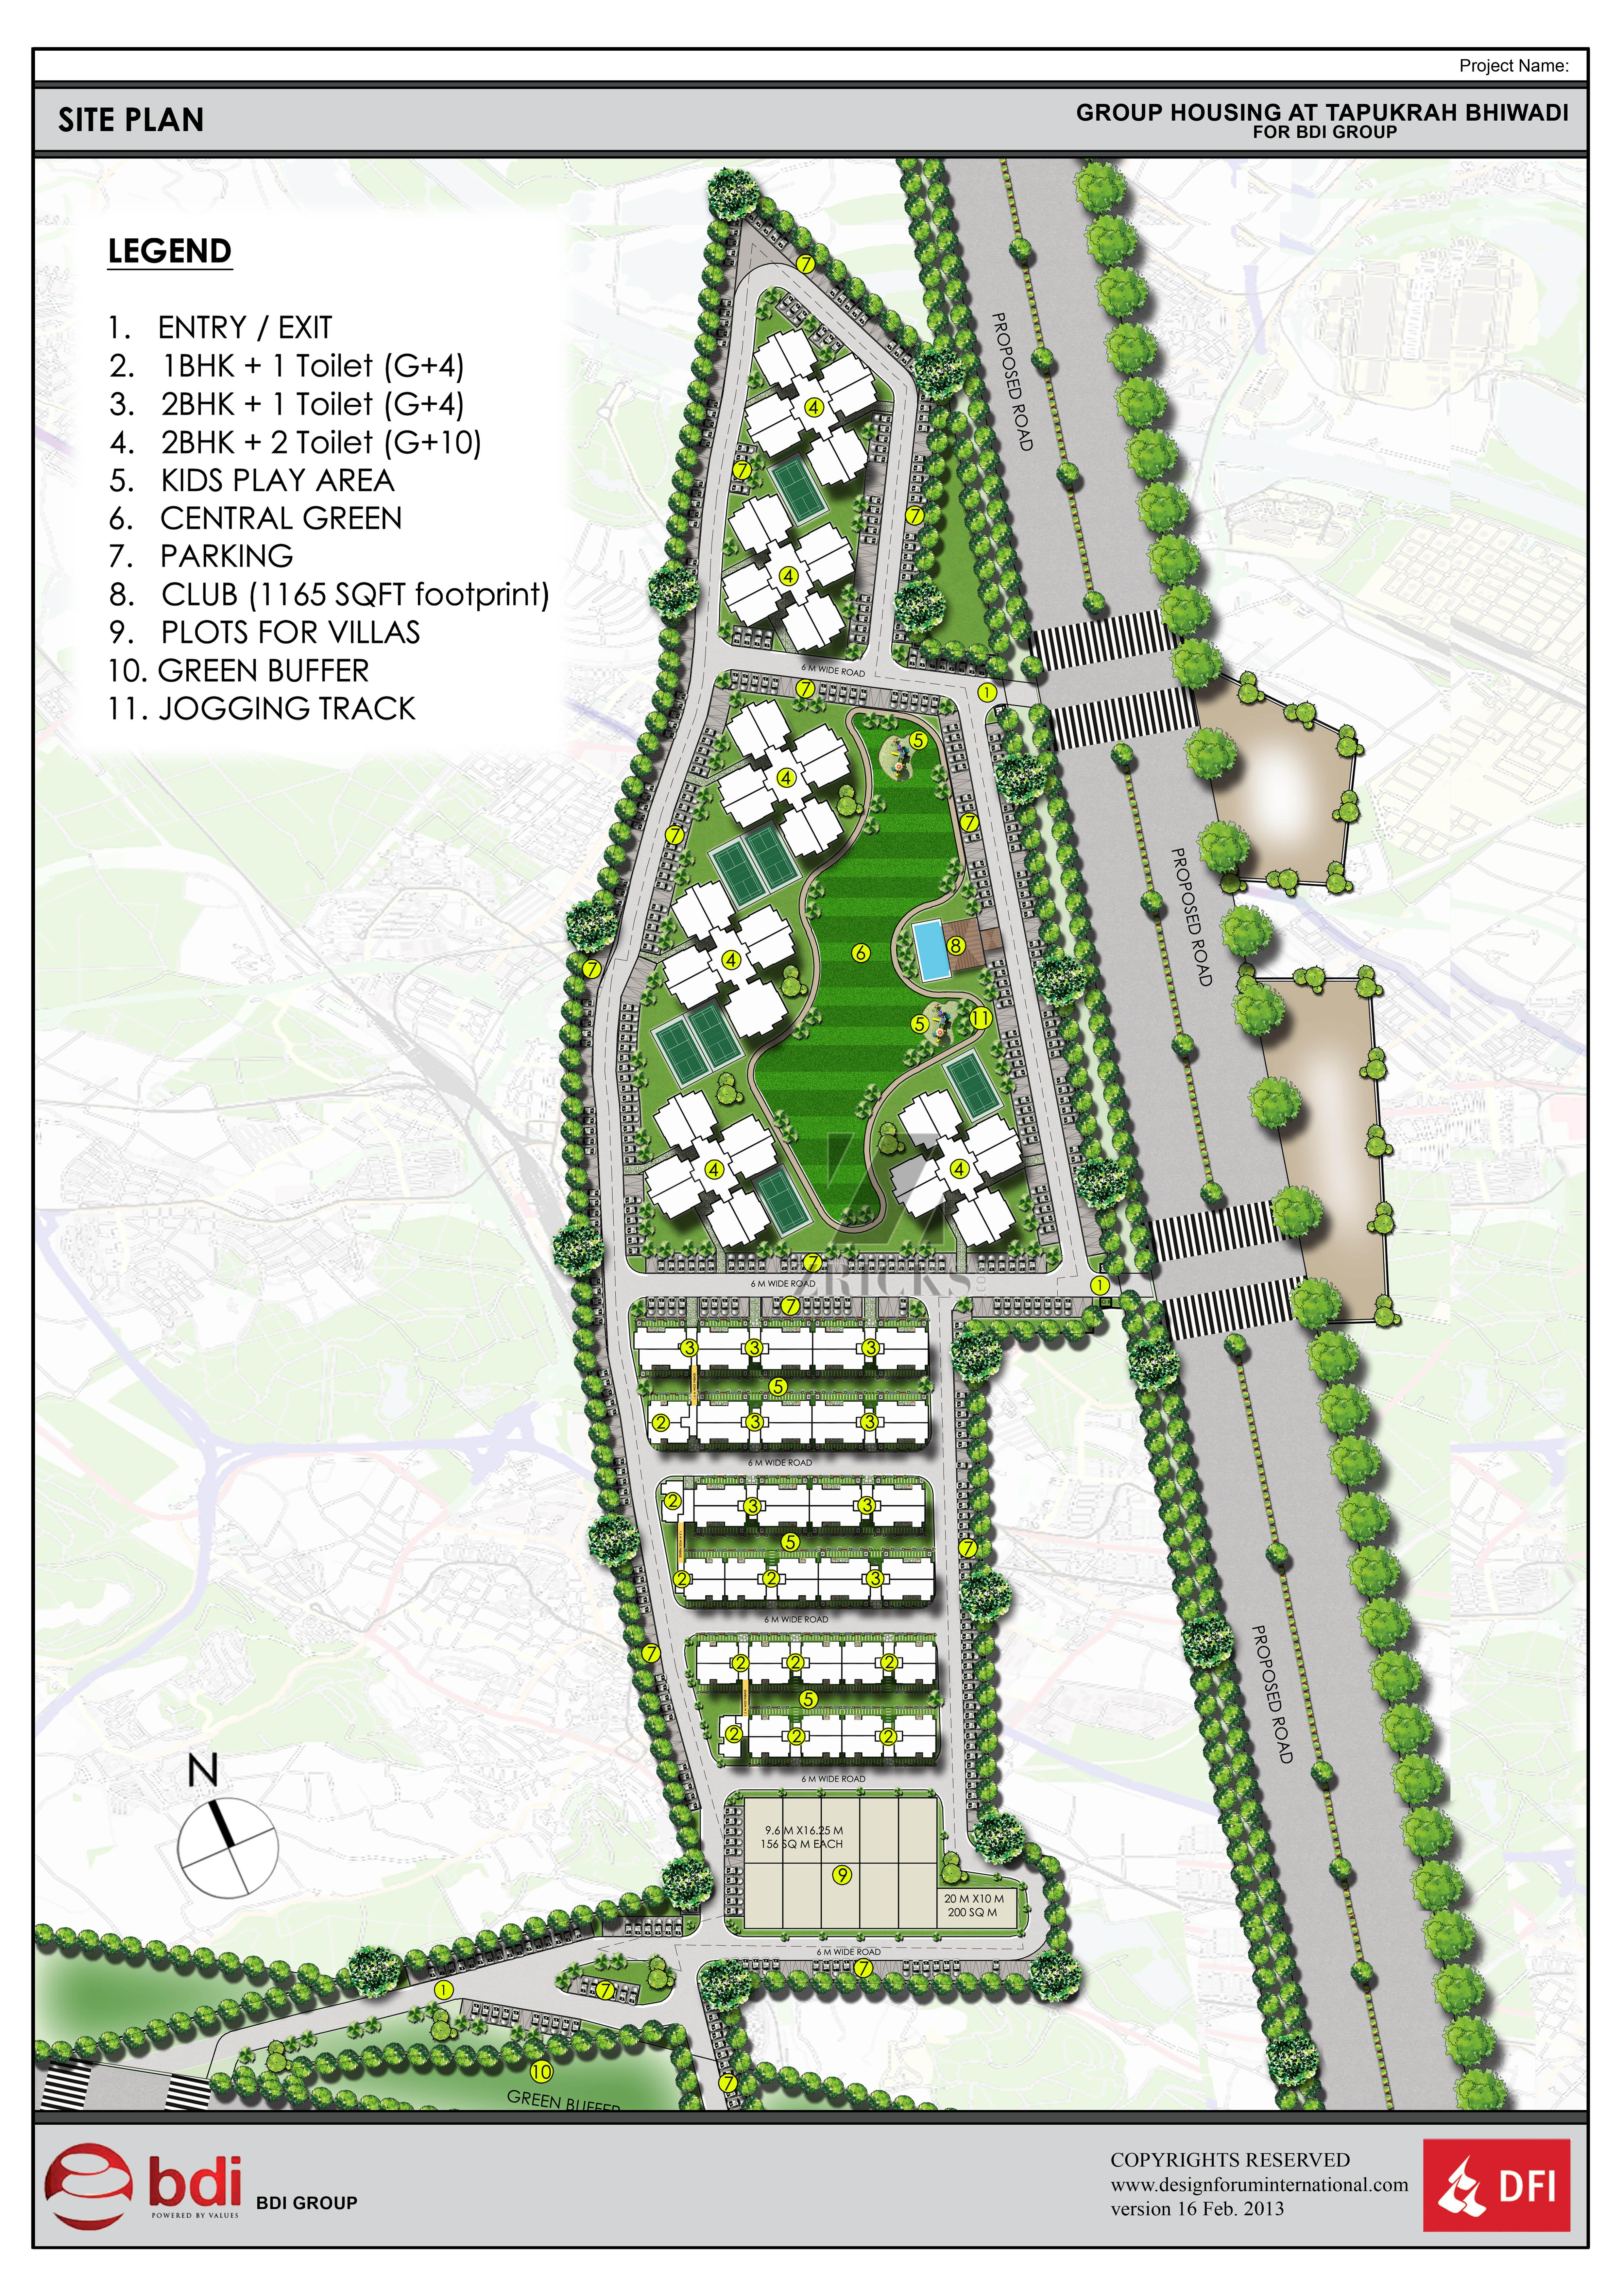 questions and answers about bdi ambaram bhiwadi com the bdi ambaram master plan is available